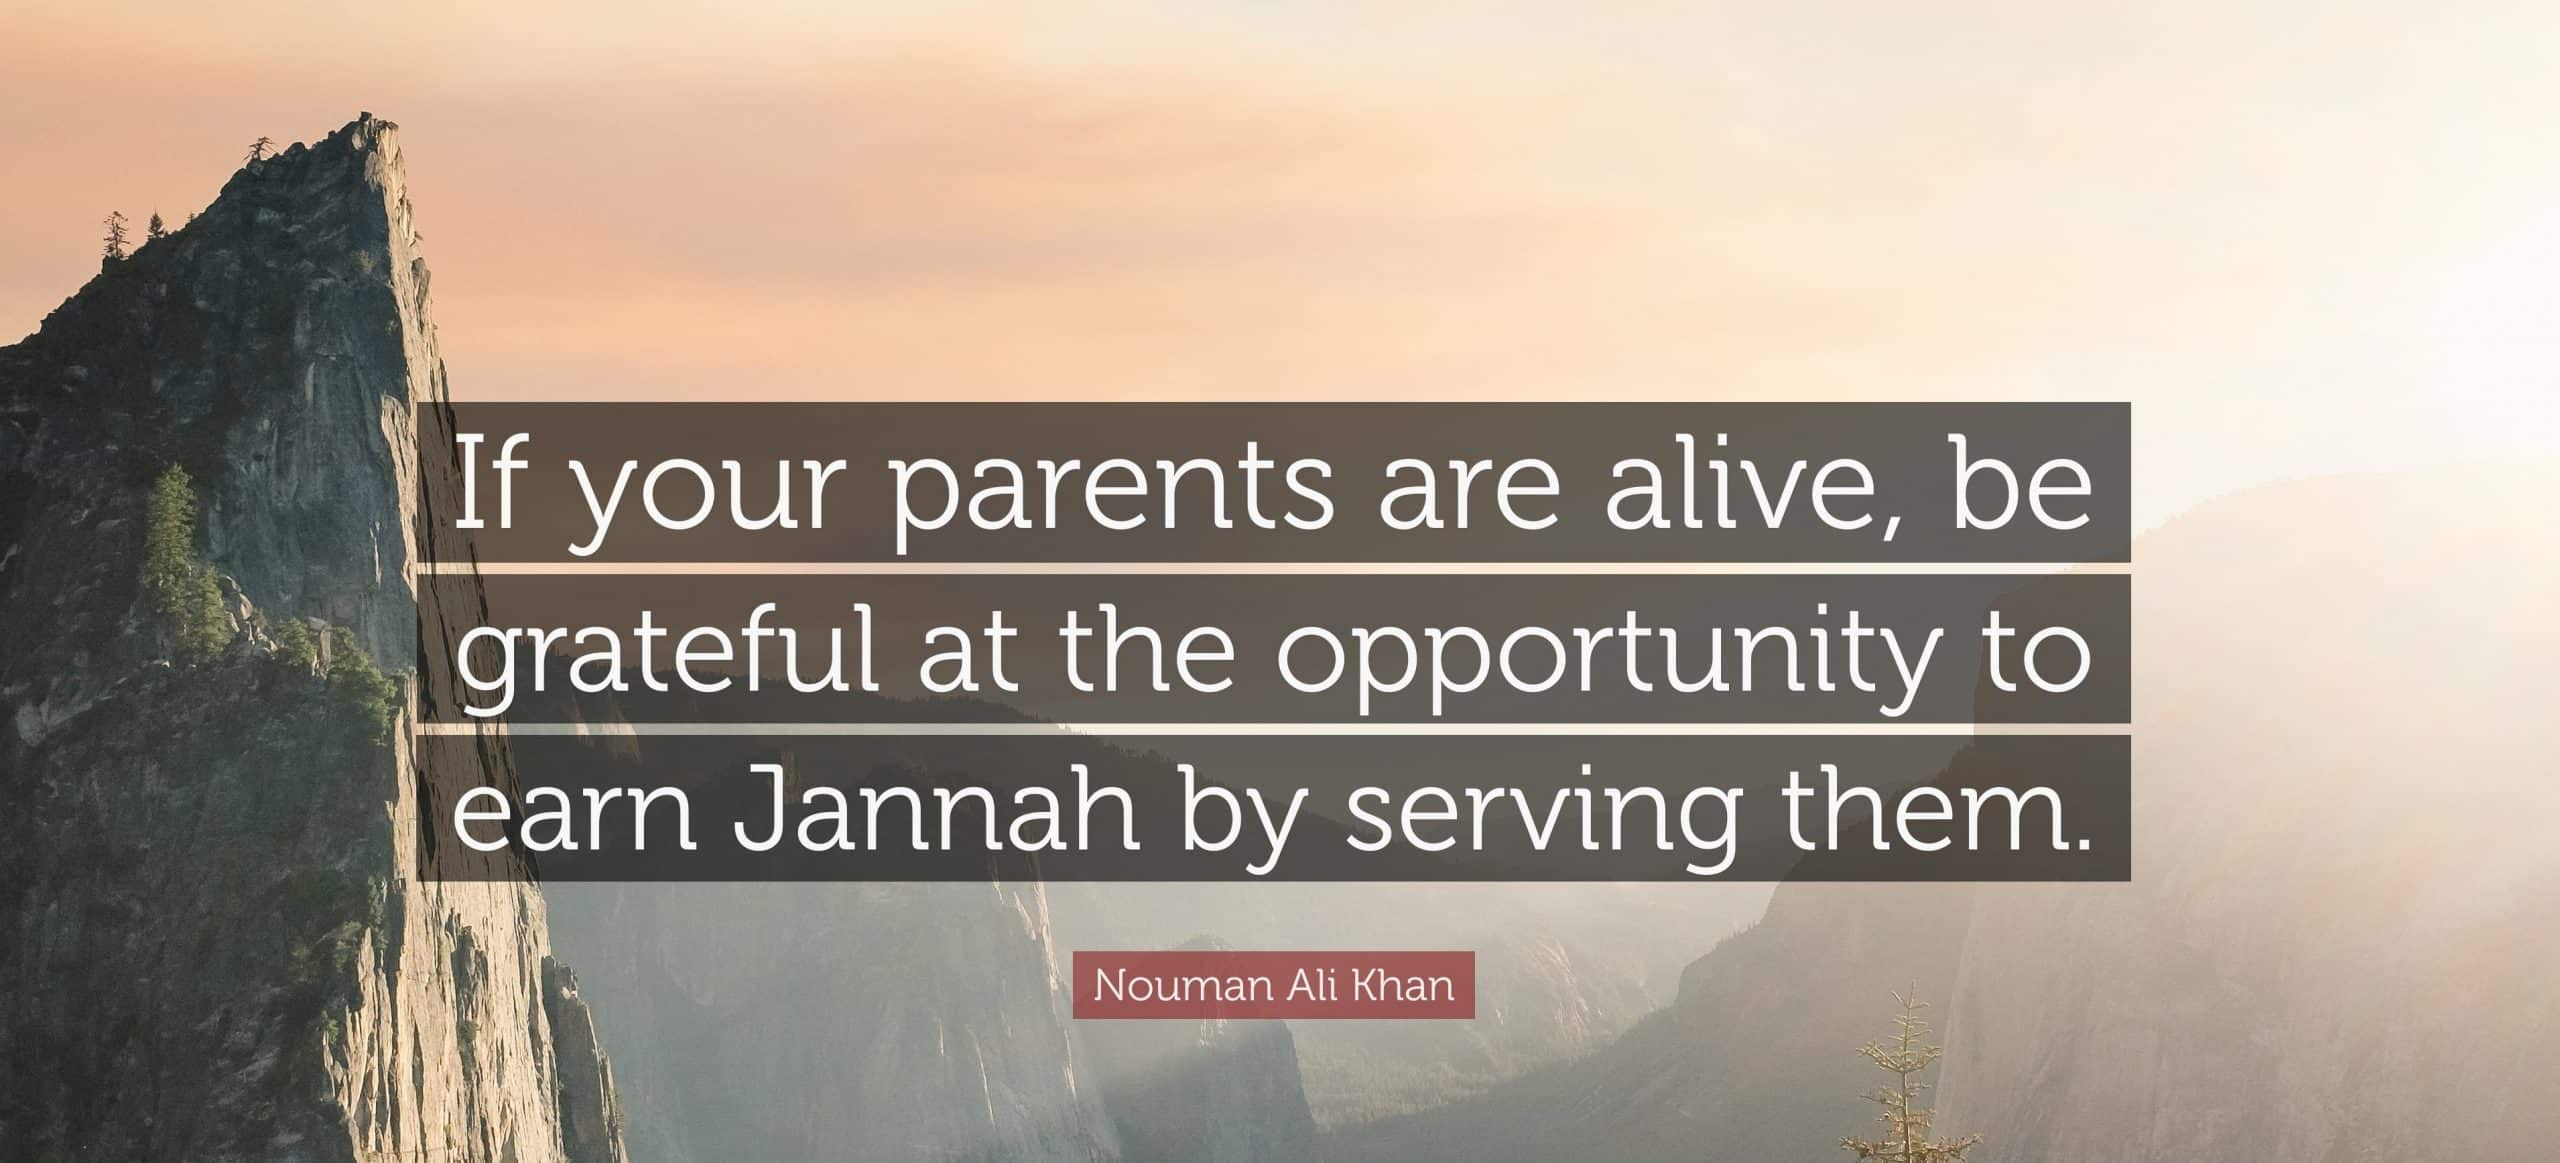 What islam says about parents